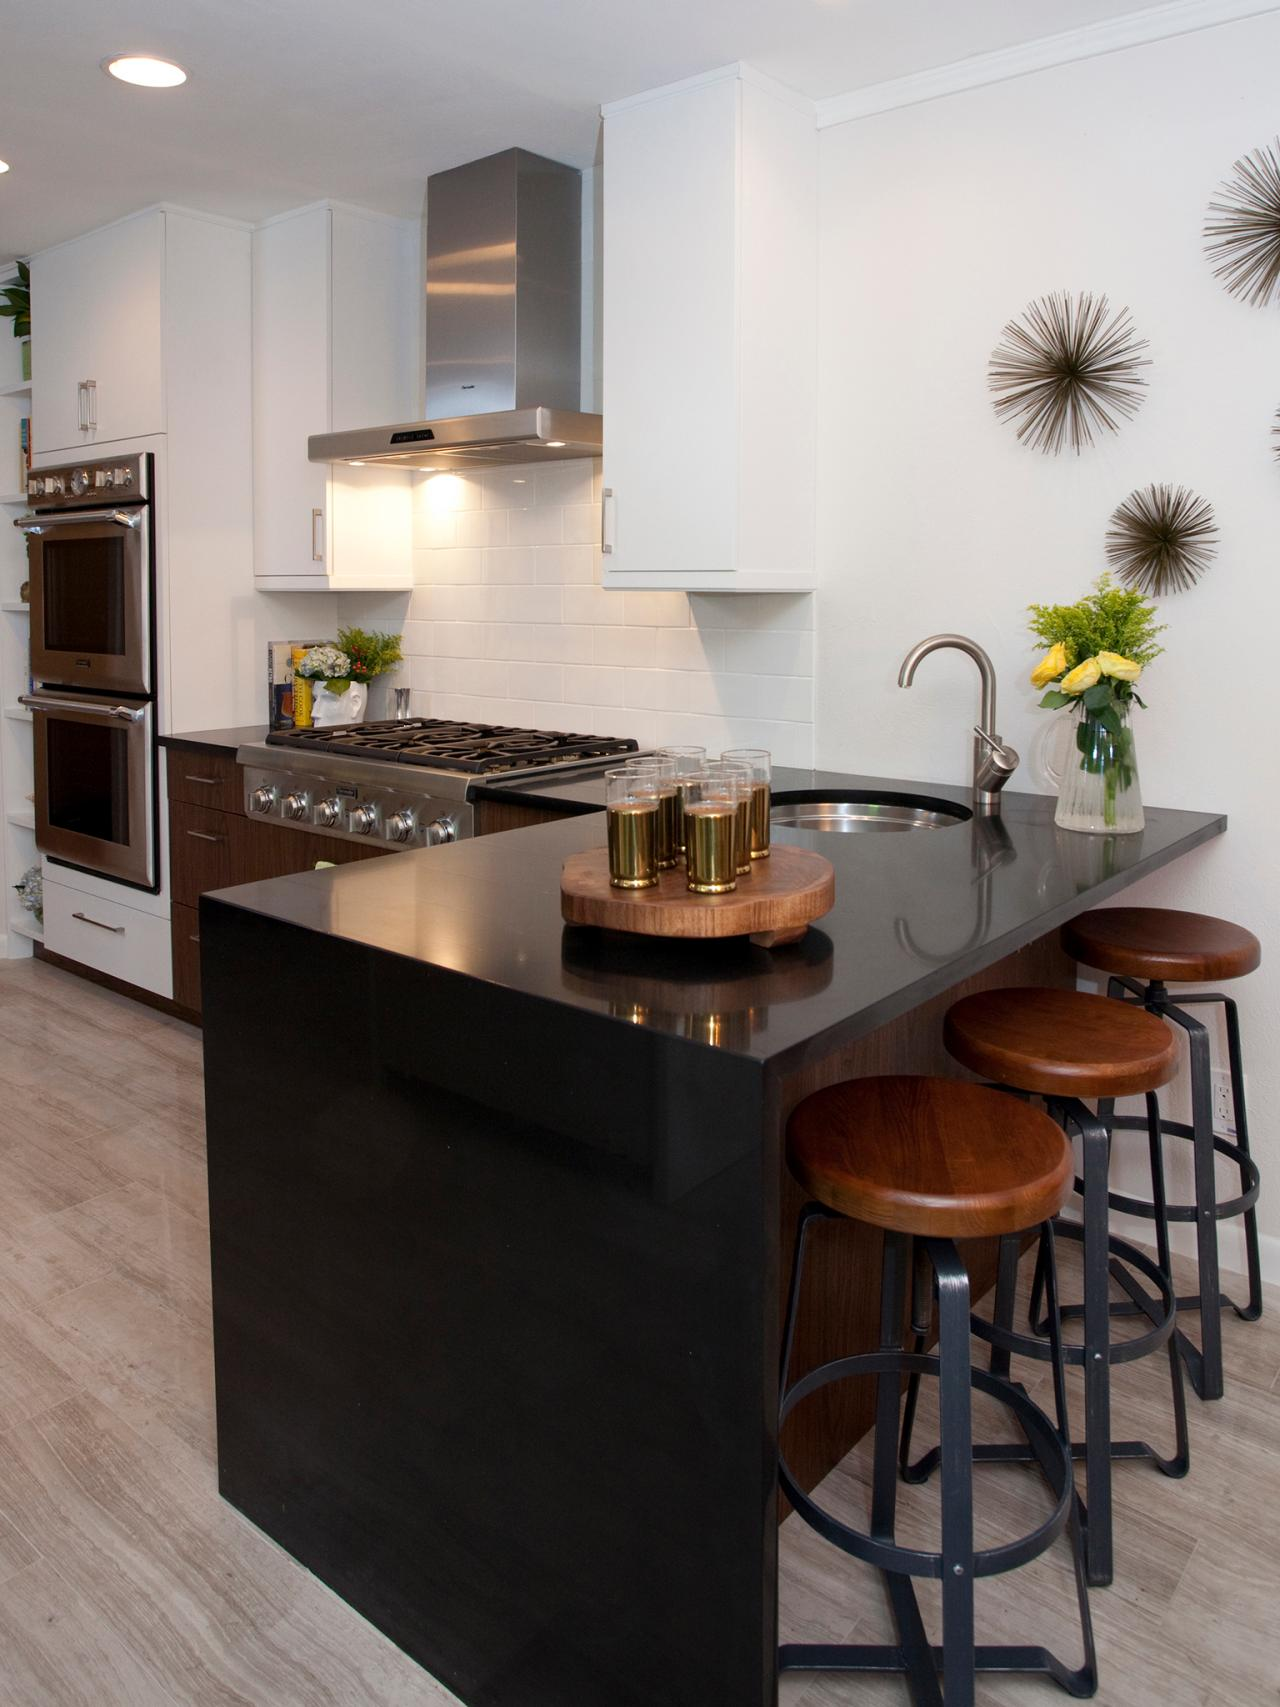 Kitchen Bar Stool & Chair Options HGTV & Ideas